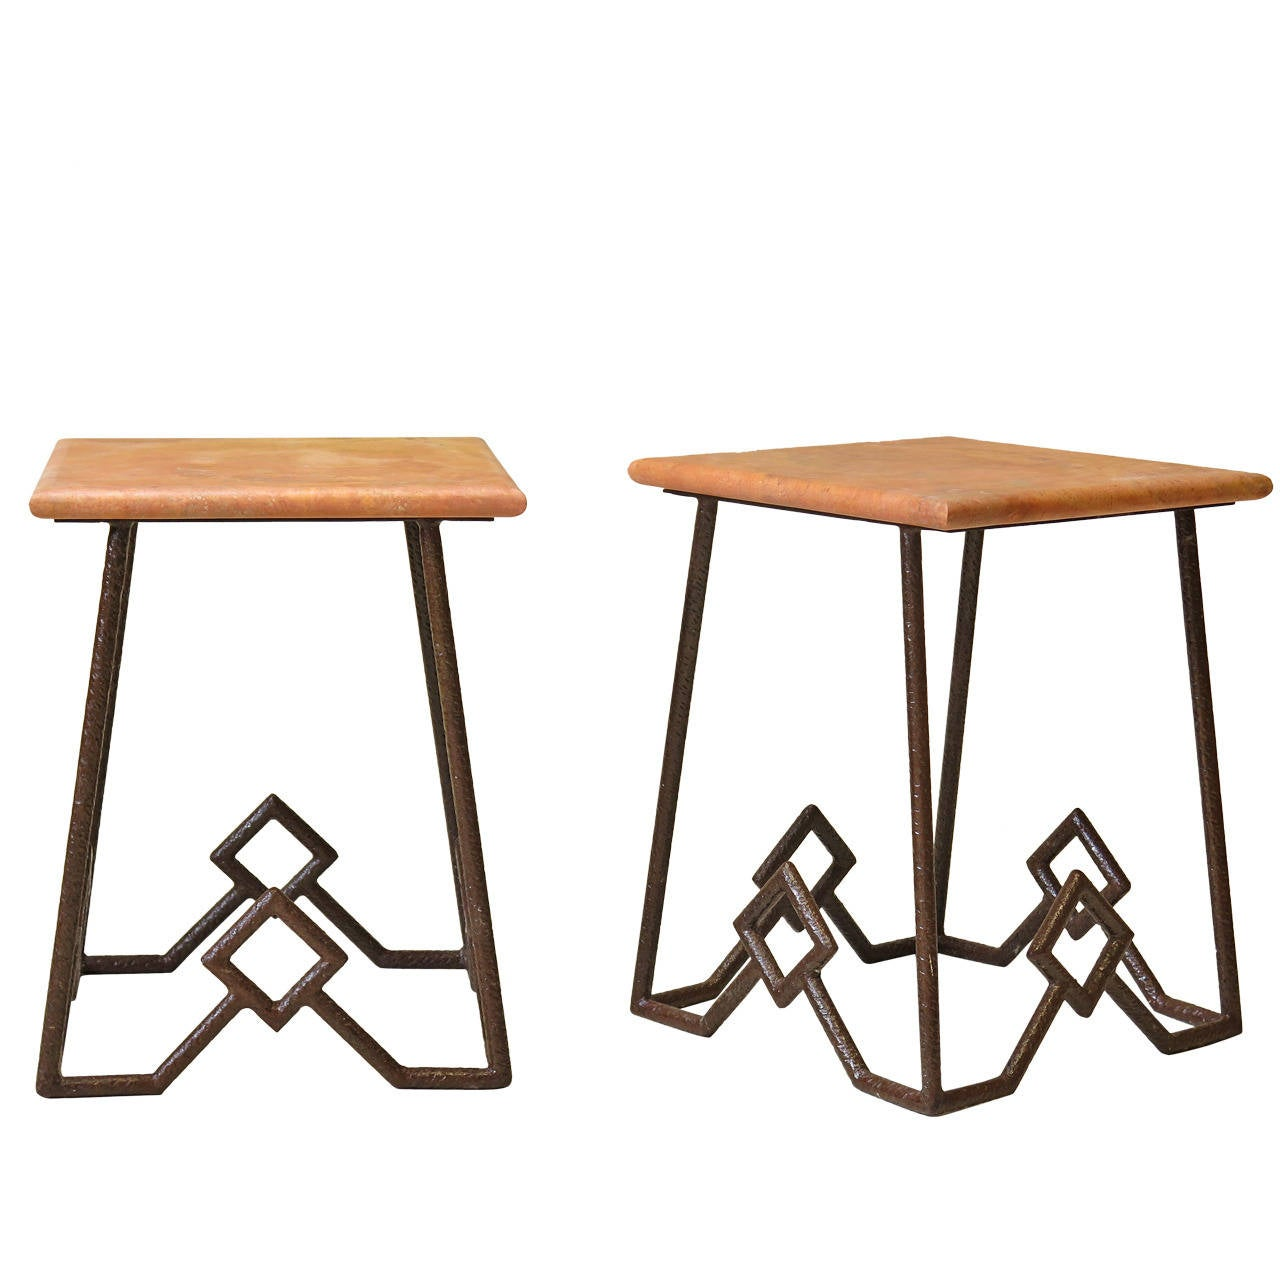 Pair of Iron and Marble Side Tables, France, circa 1950s